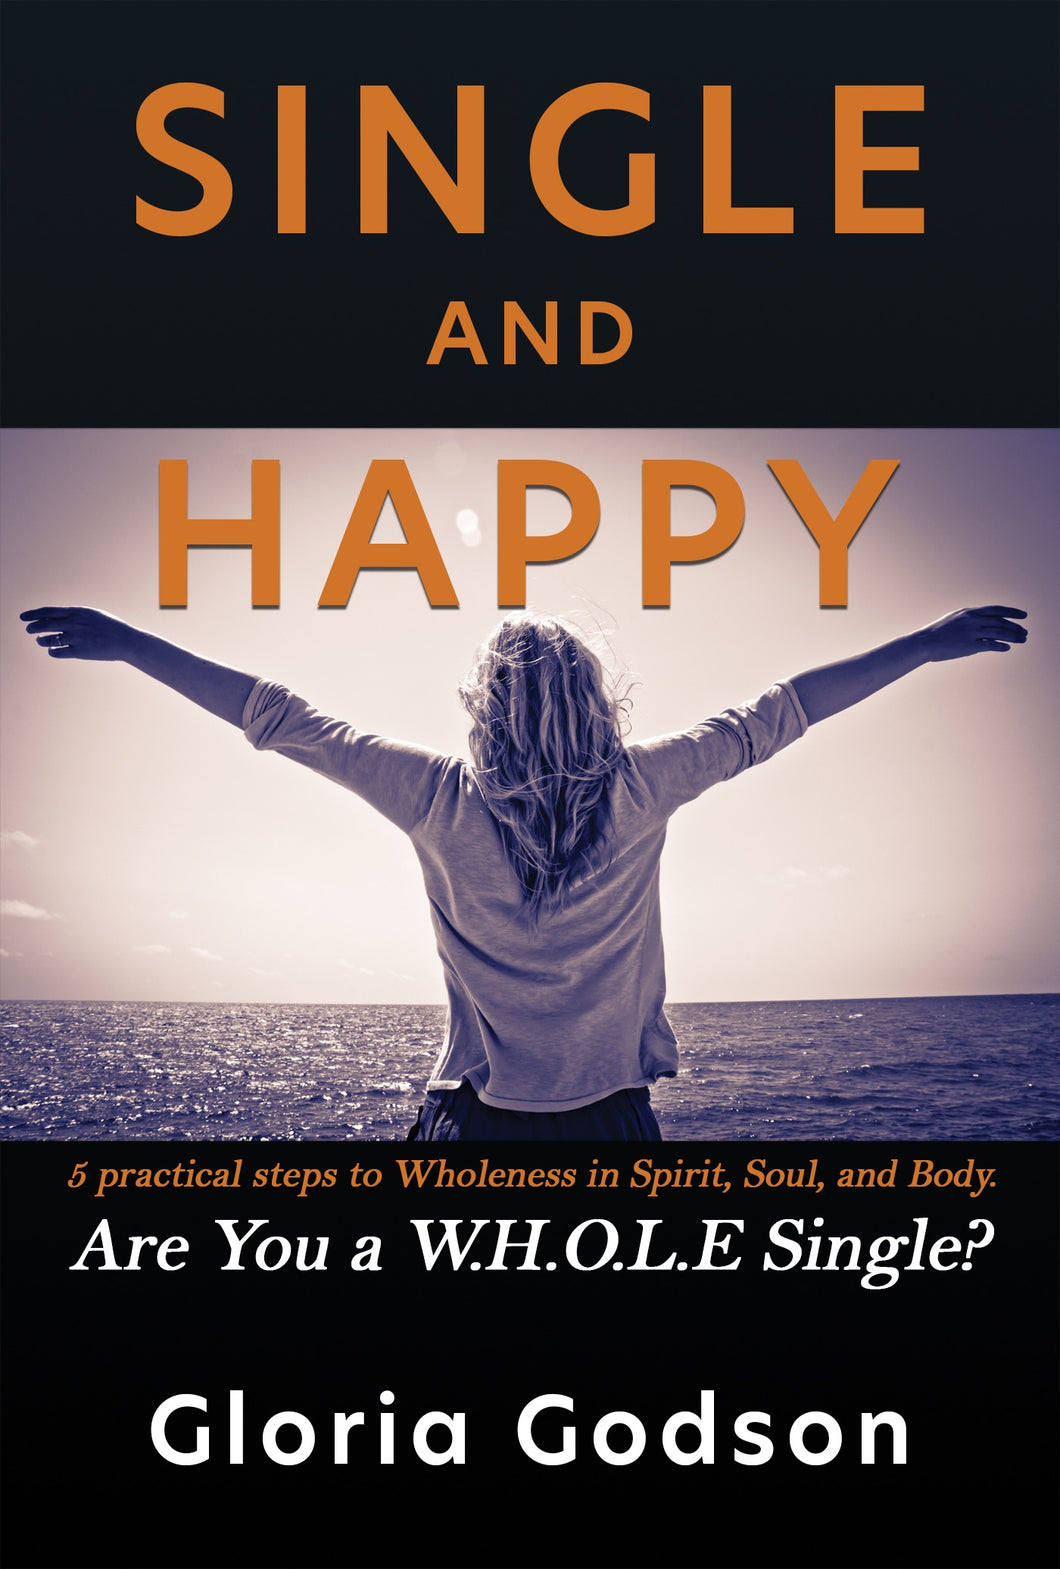 Single & Happy - Are You A W.H.O.L.E Single?